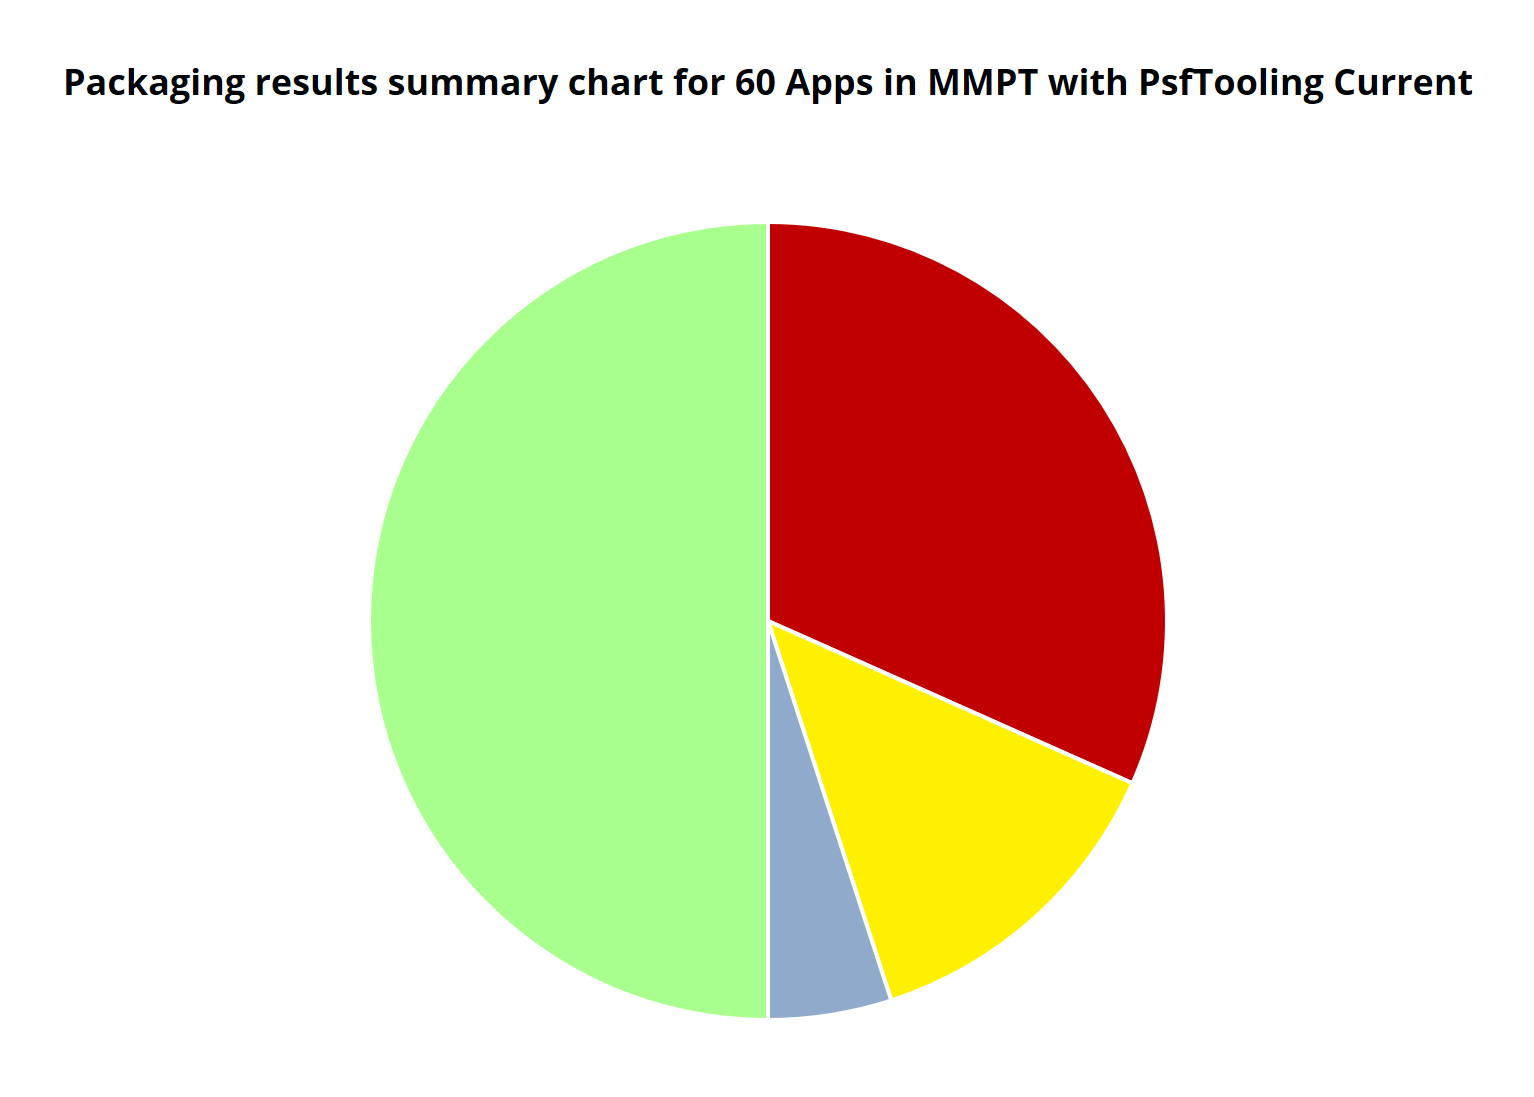 Chart showing testing results of 60 apps using the current version of PsfTooling.